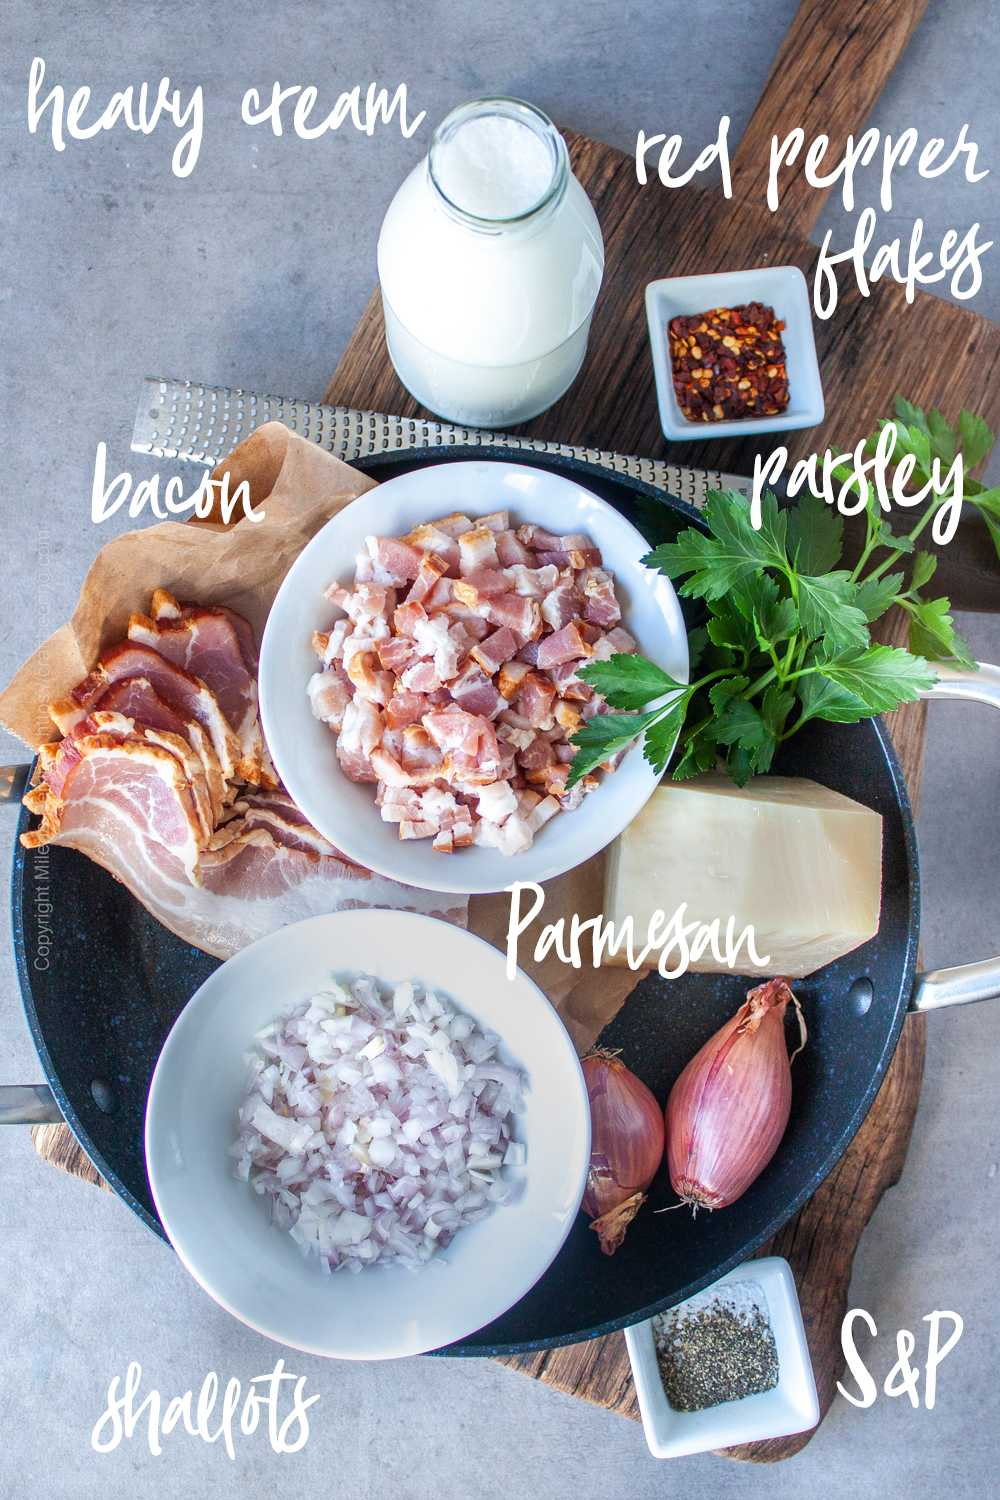 Bacon, shallots, heavy cream and other ingredients needed to make beacon cream sauce.